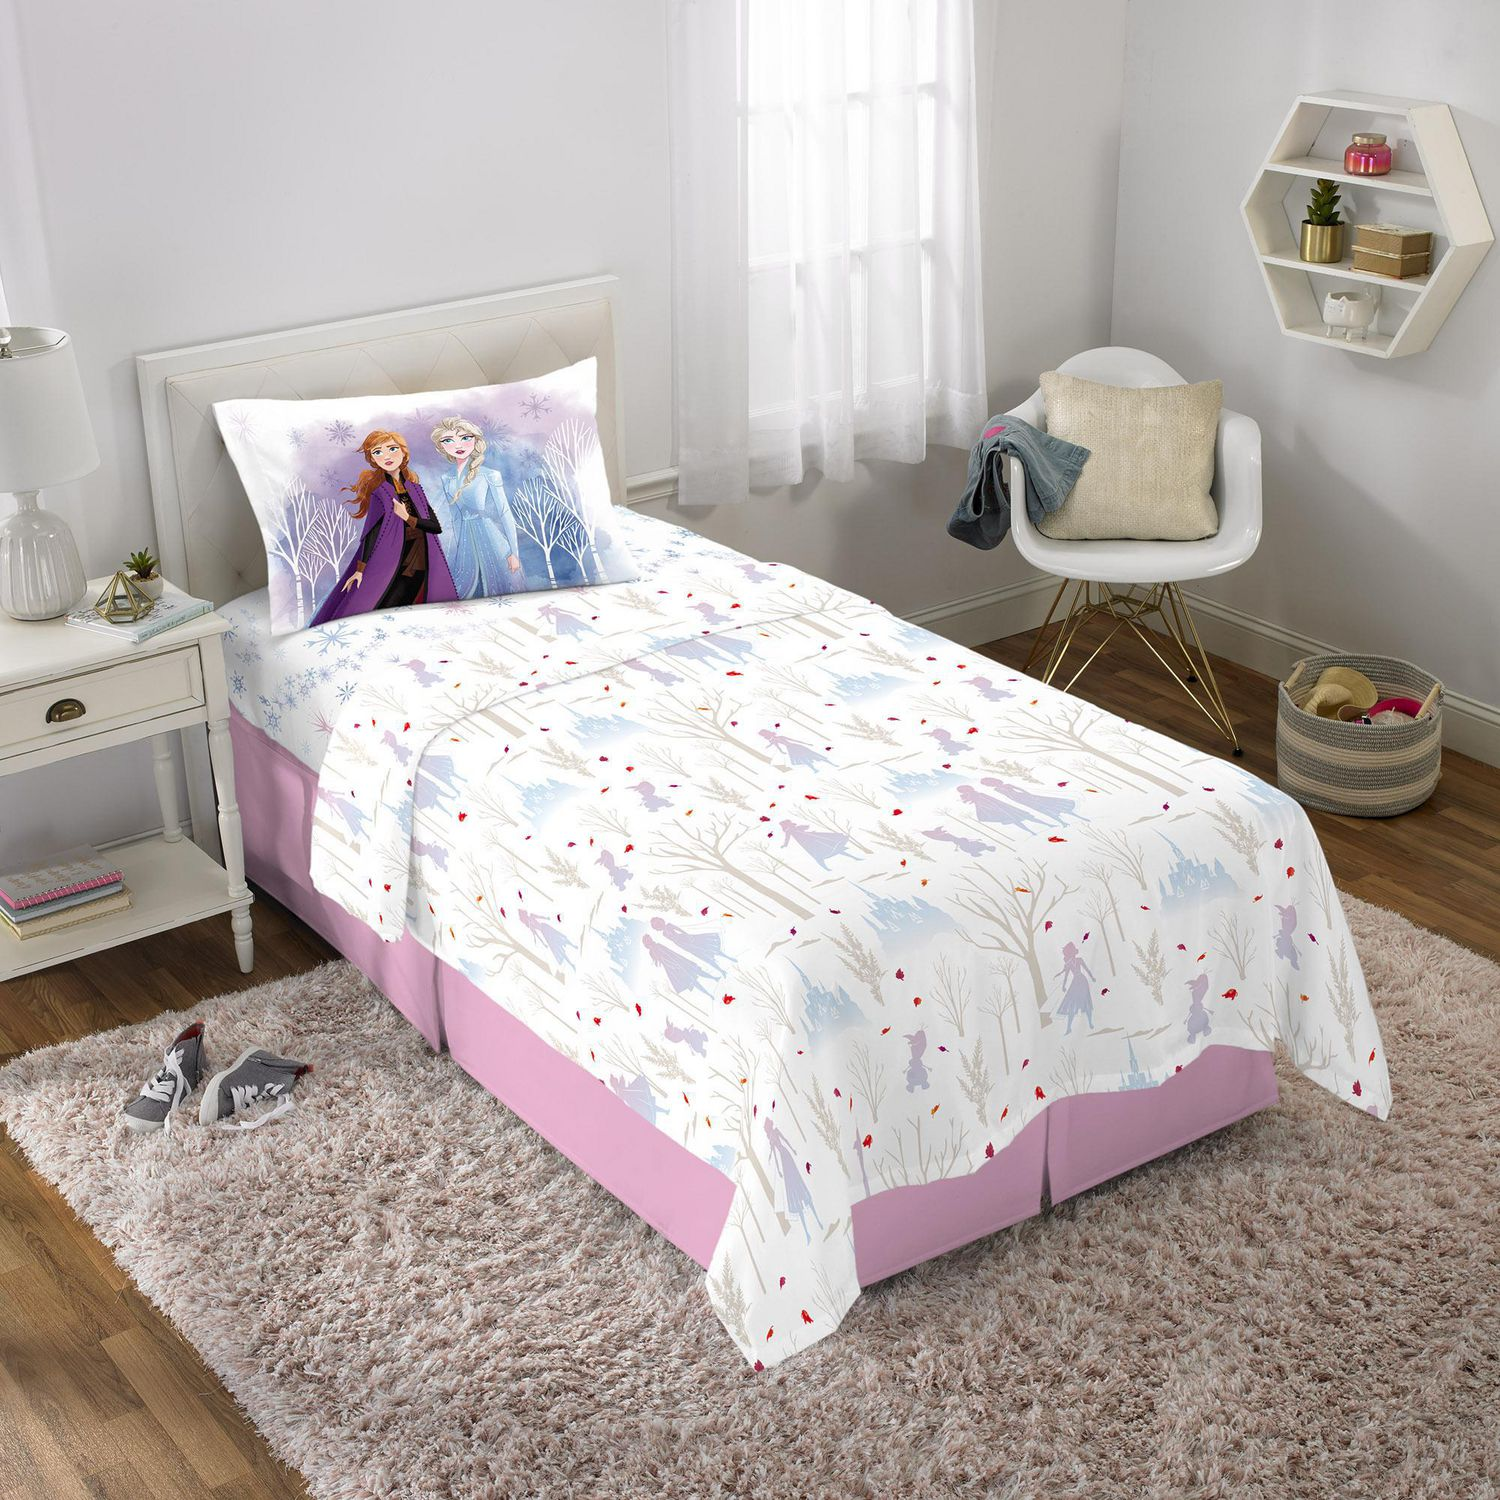 Double-Sided Kids Super Soft Bedding Official Disney Product Features Bruni The Salamander Disney Frozen 2 Hot /& Cold 1 Pack Pillowcase